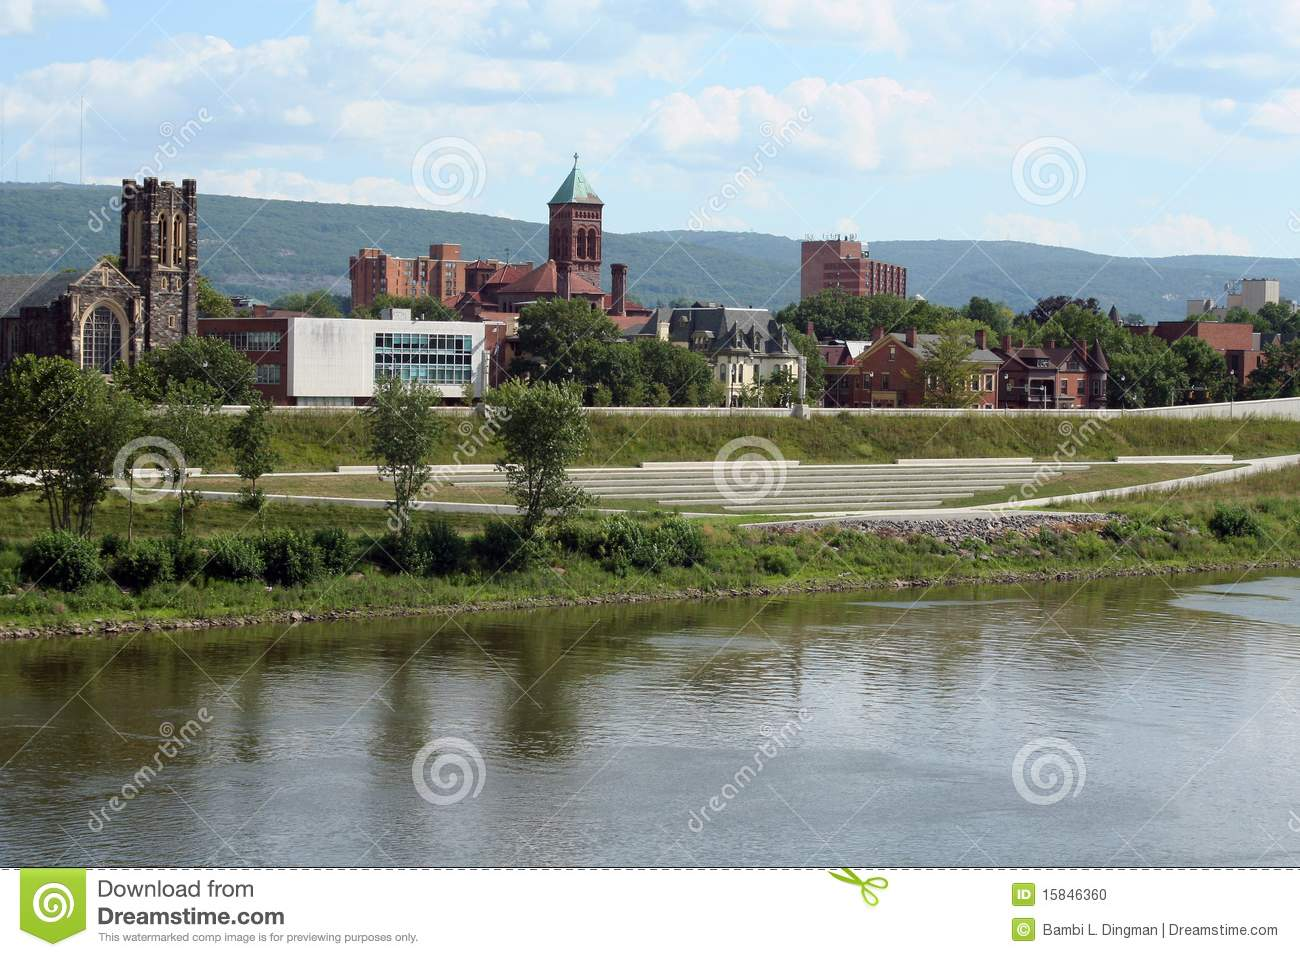 Wilkes Barre (PA) United States  City pictures : Of Northeastern United States Of America: Northeastern United States ...